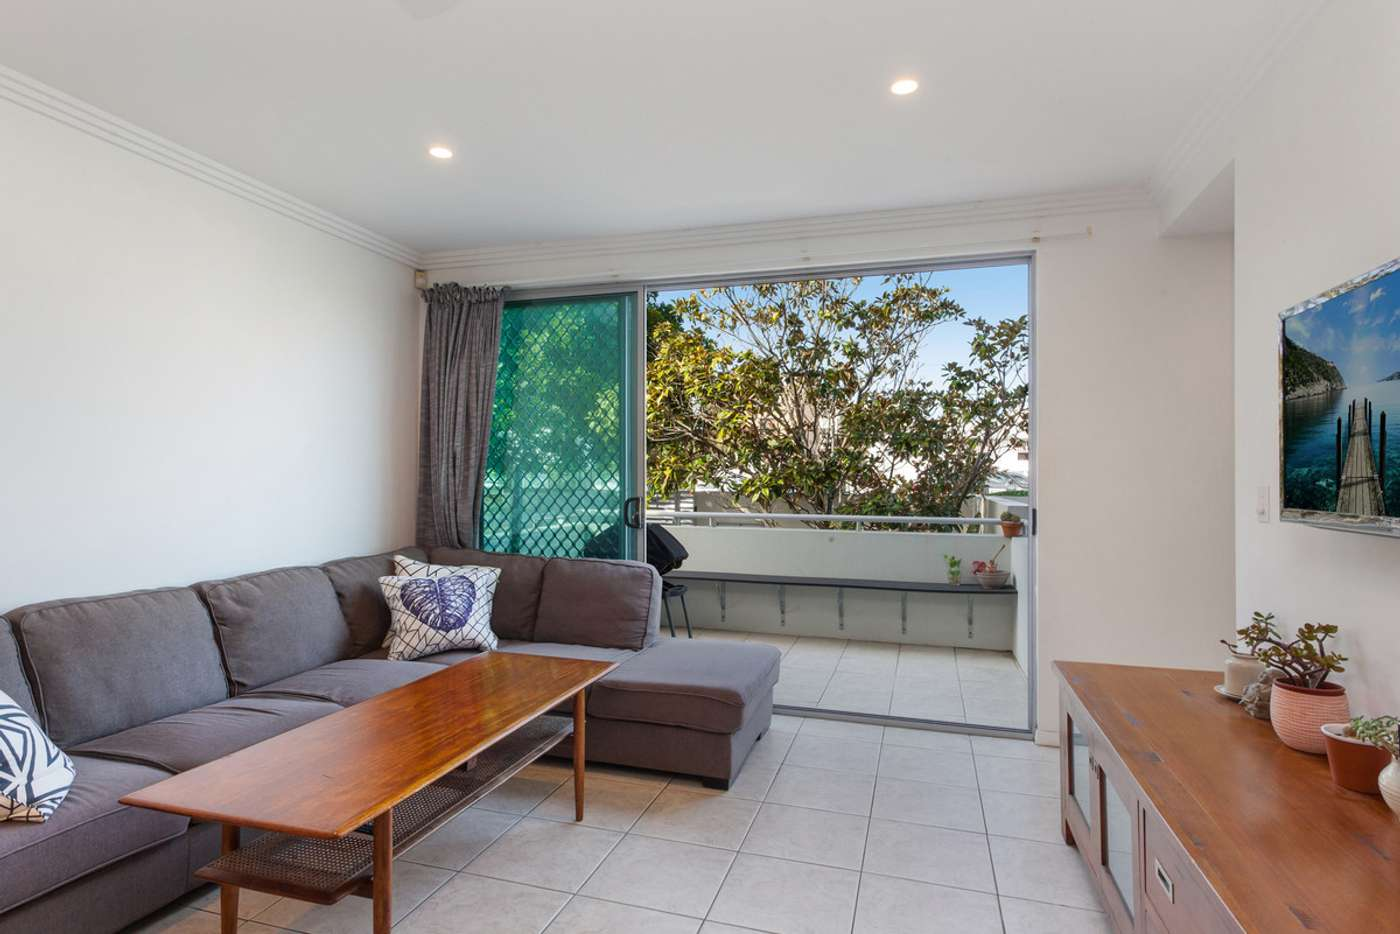 Sixth view of Homely apartment listing, 1/2304 Gold Coast Highway, Mermaid Beach QLD 4218